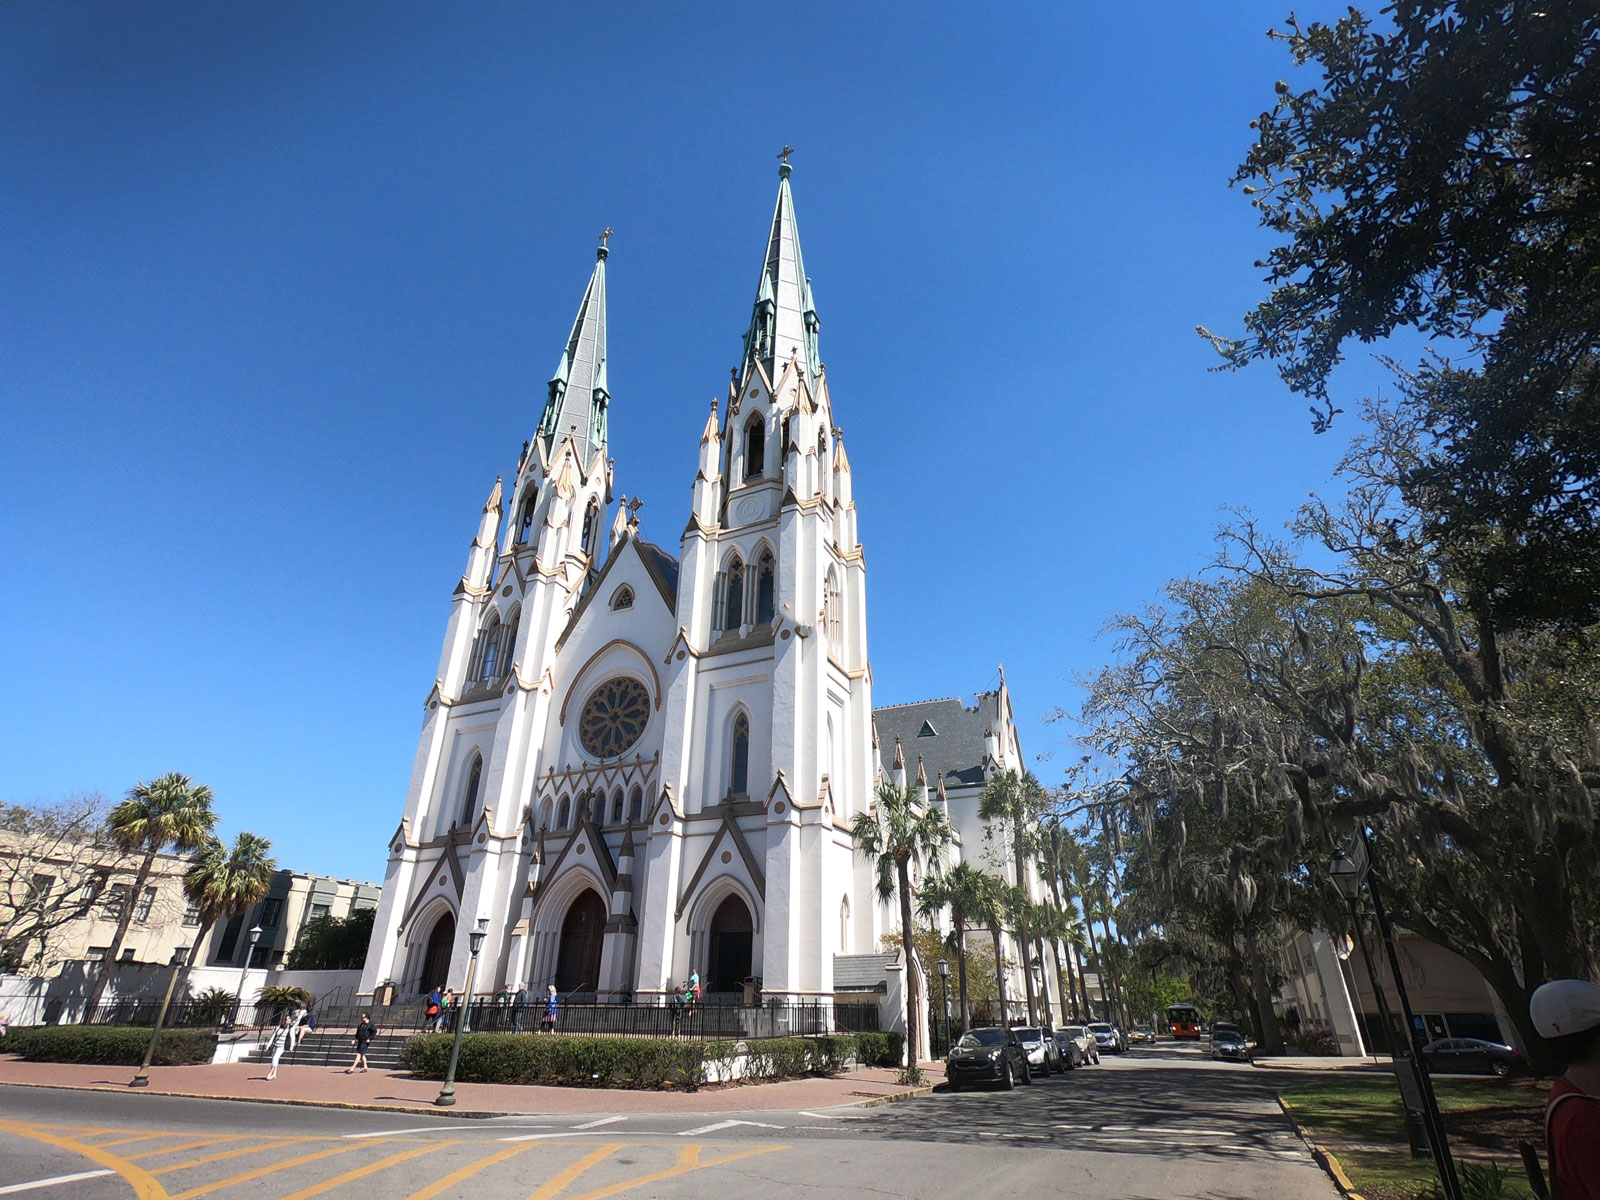 Exterior view of French Gothic styled Cathedral of St John the Baptist Catholic Church in Savannah, Georgia